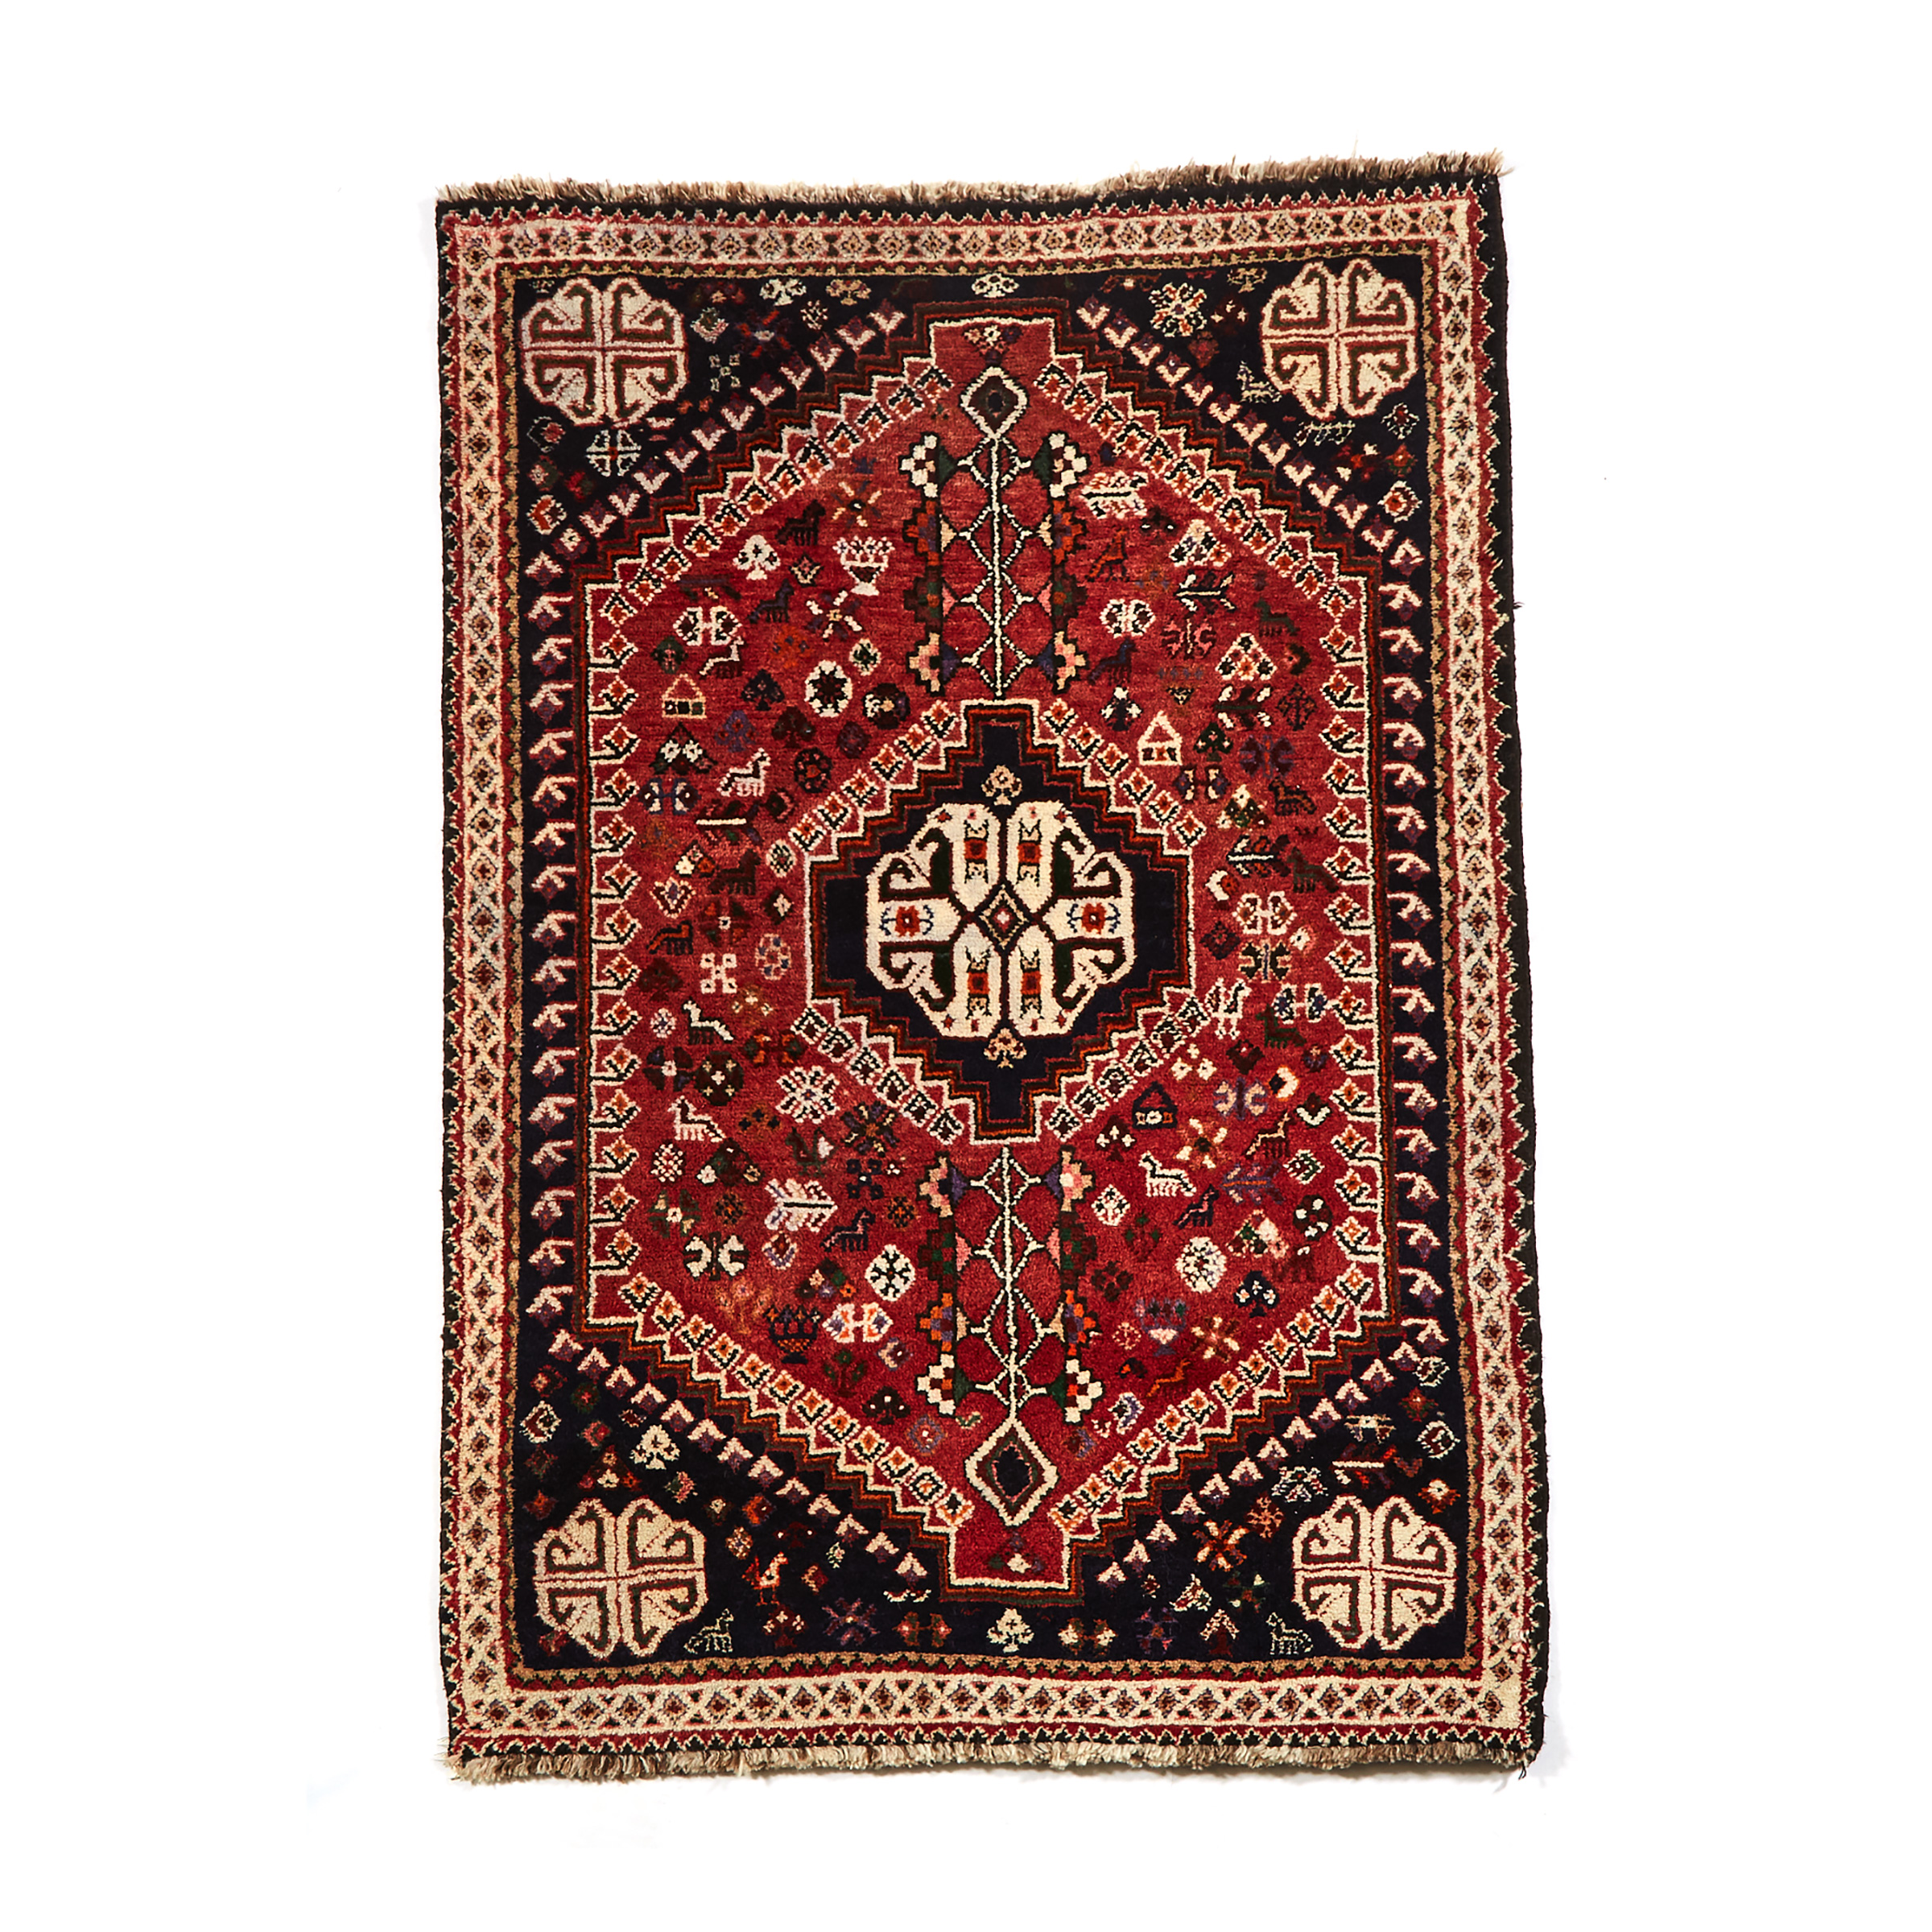 Shiraz Rug, Persian, late 20th century